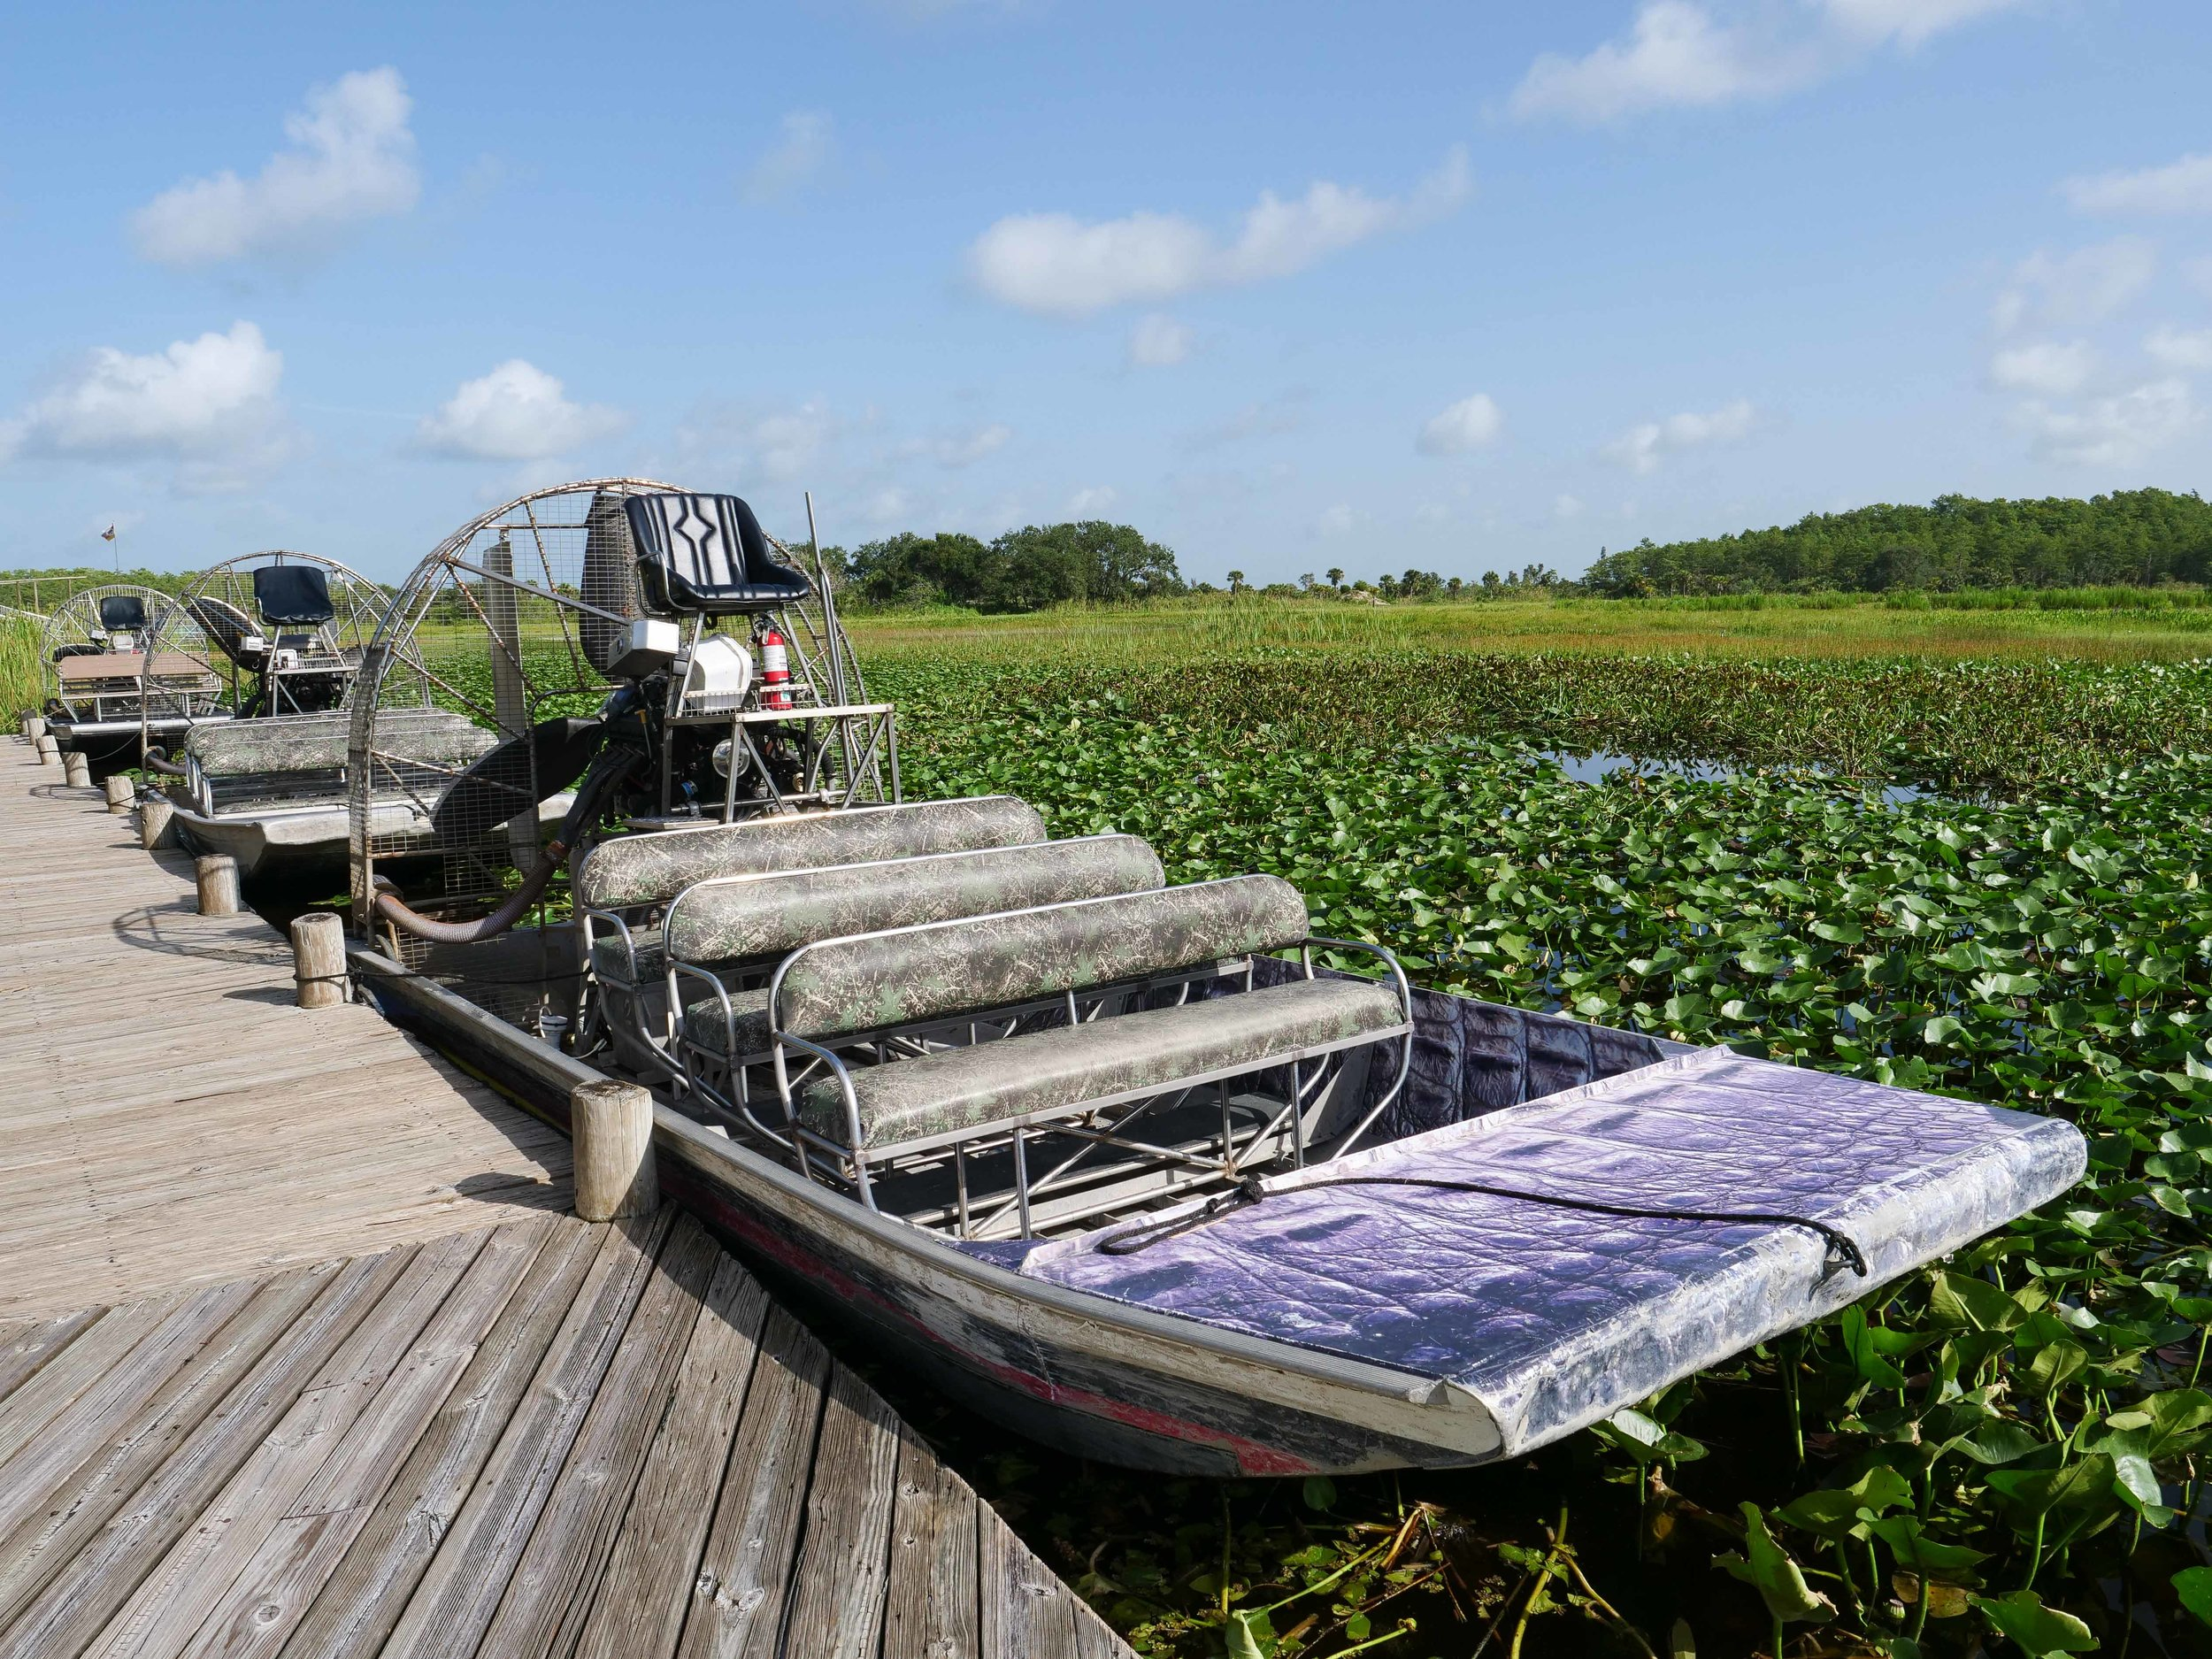 An Airboat is docked waiting for passenger's to board.